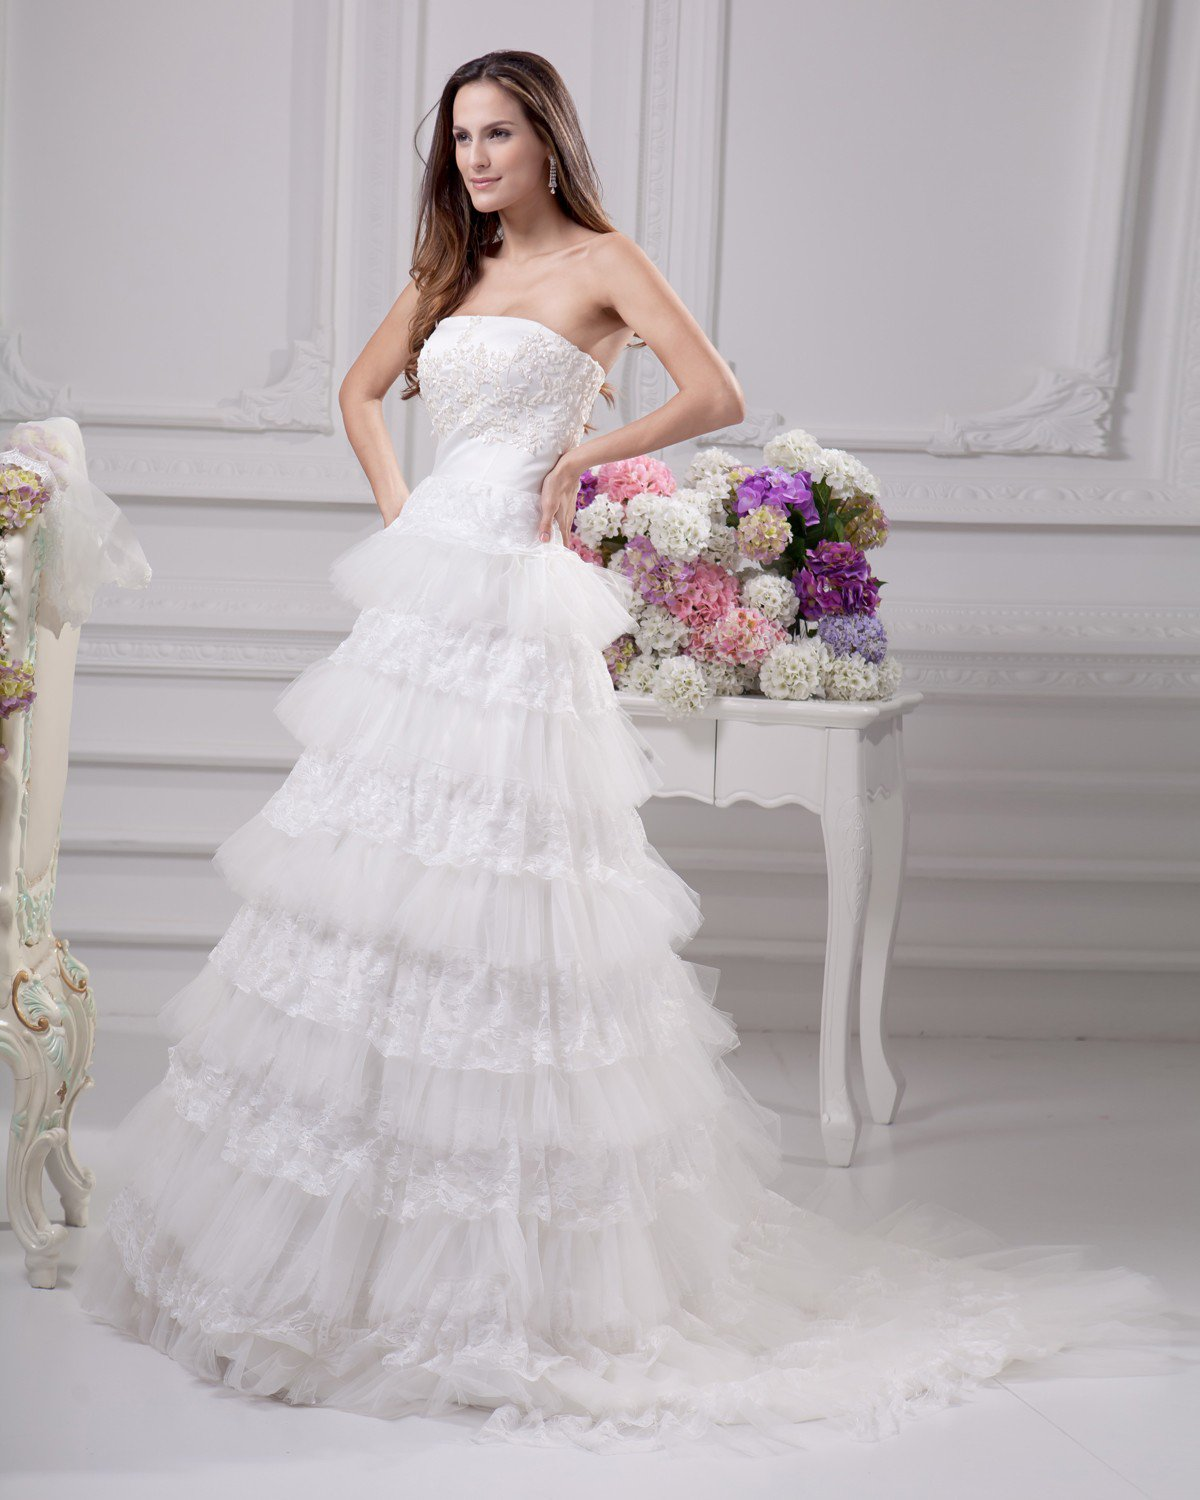 Elegant Applique Beading Ruffles Strapless Floor Length Satin Yarn Lace Ball Gown Wedding Dress